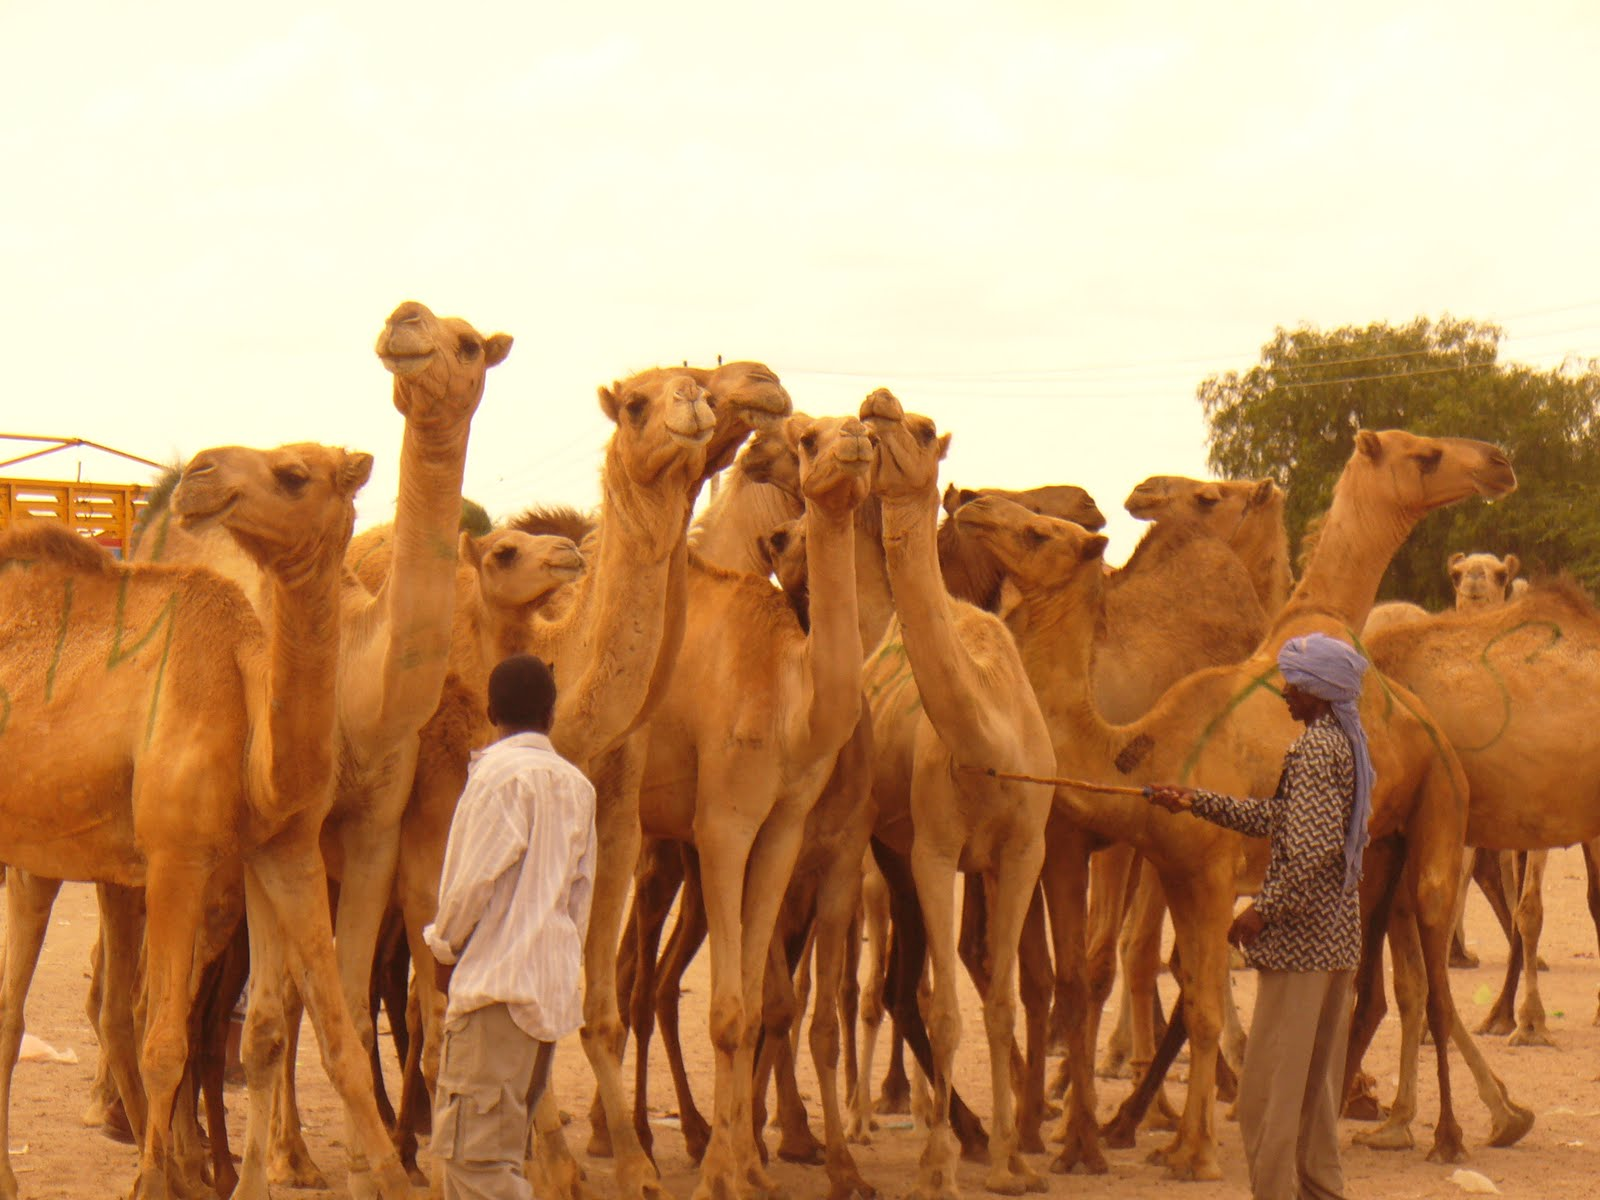 THIS IS A CAMEL THAT WE ACTUALLY DRINK A MILK FROM IT, AND ALSO WE EAT THEIR MEET..:)